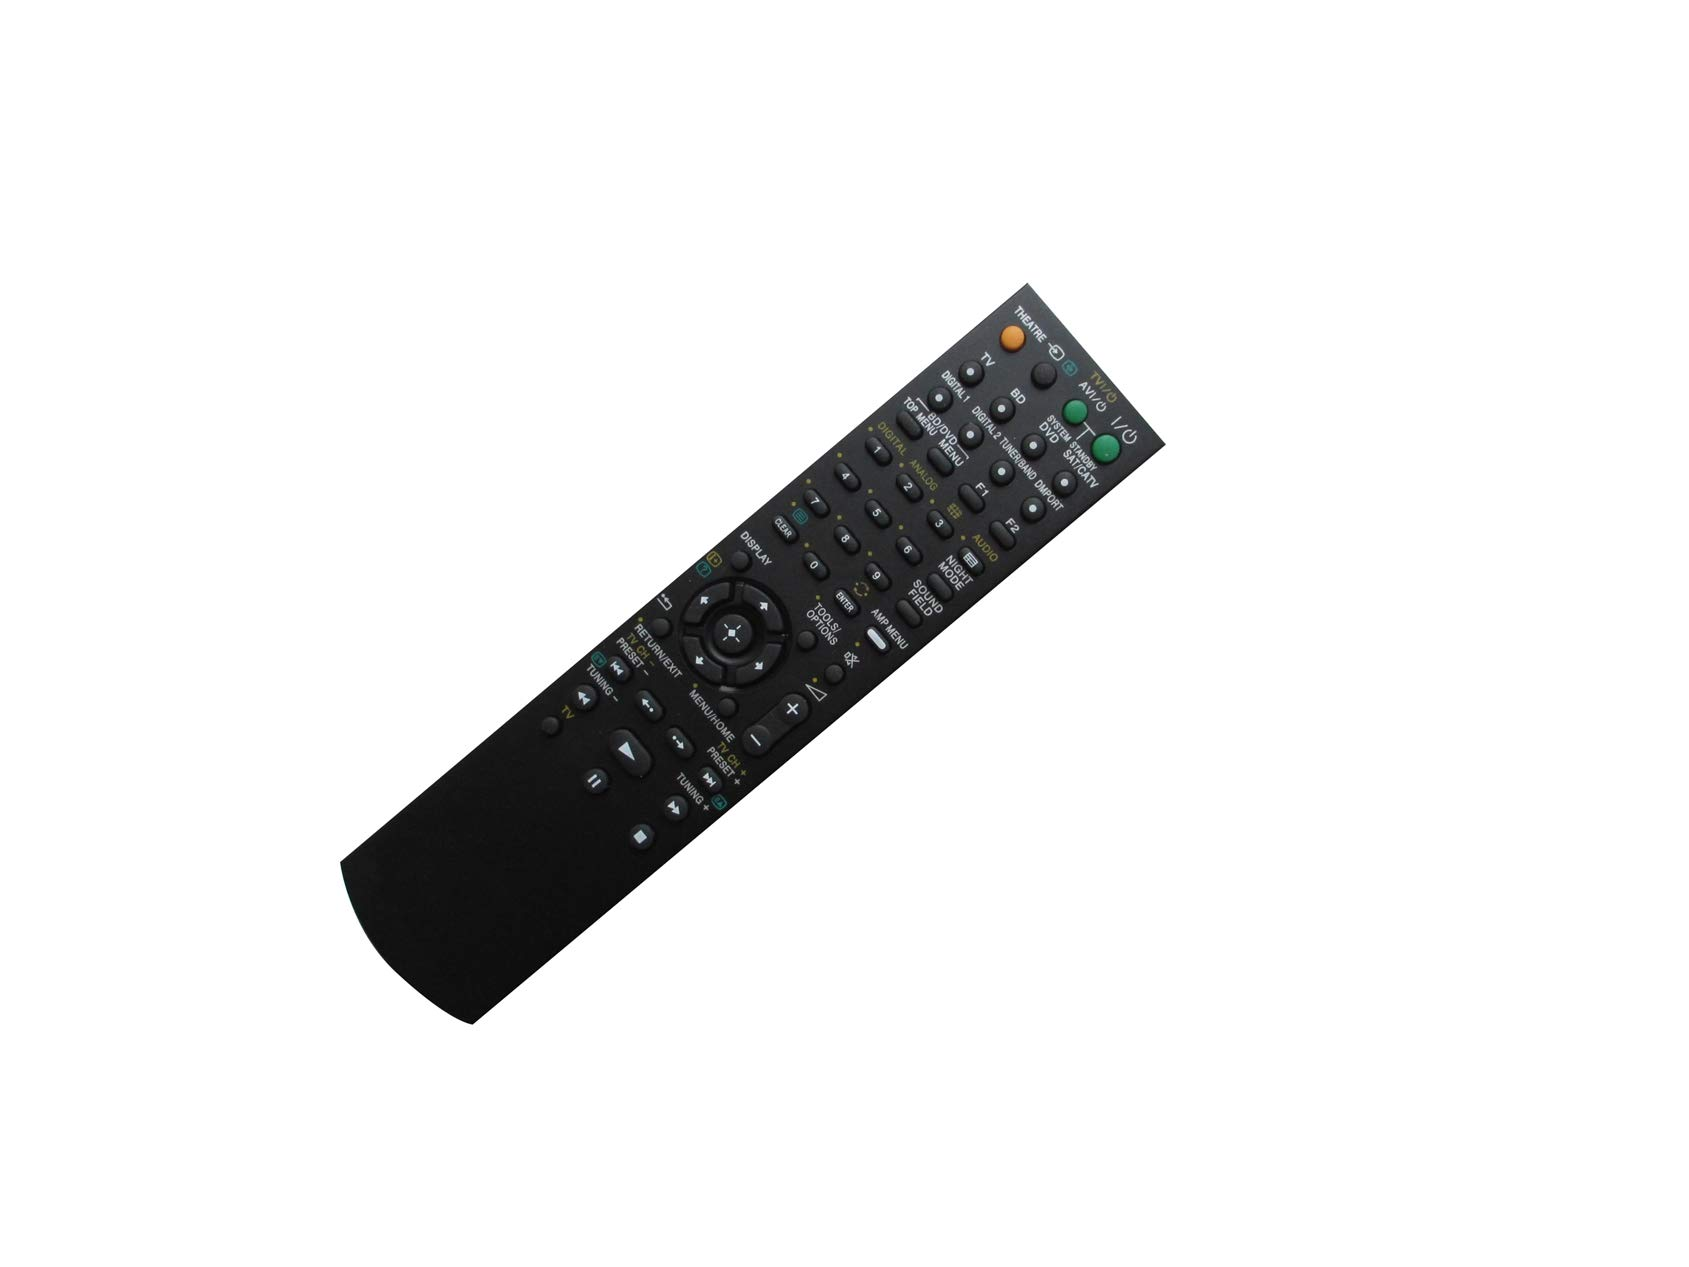 HCDZ Replacement Remote Control Fit for Sony STR-KS360 STR-KS360S STR-DG720 DVD AV Home Theater System A/V Receiver